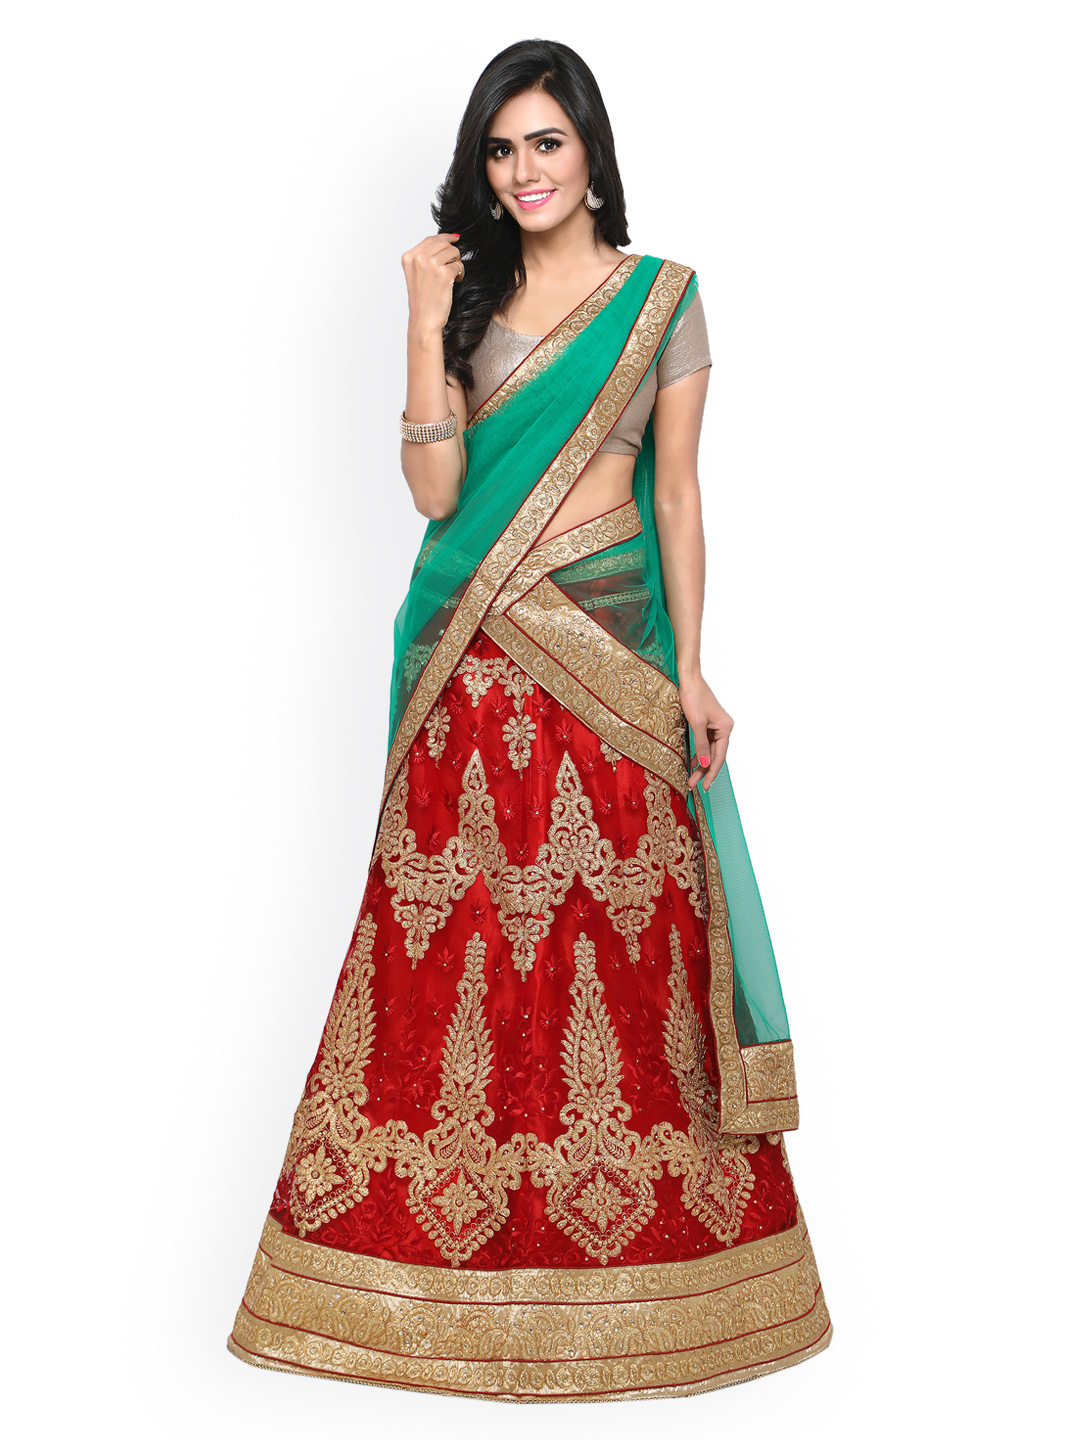 Rajesh Silk Mills Red & Beige Embroidered Unstitched Lehenga Choli with Dupatta Price in India